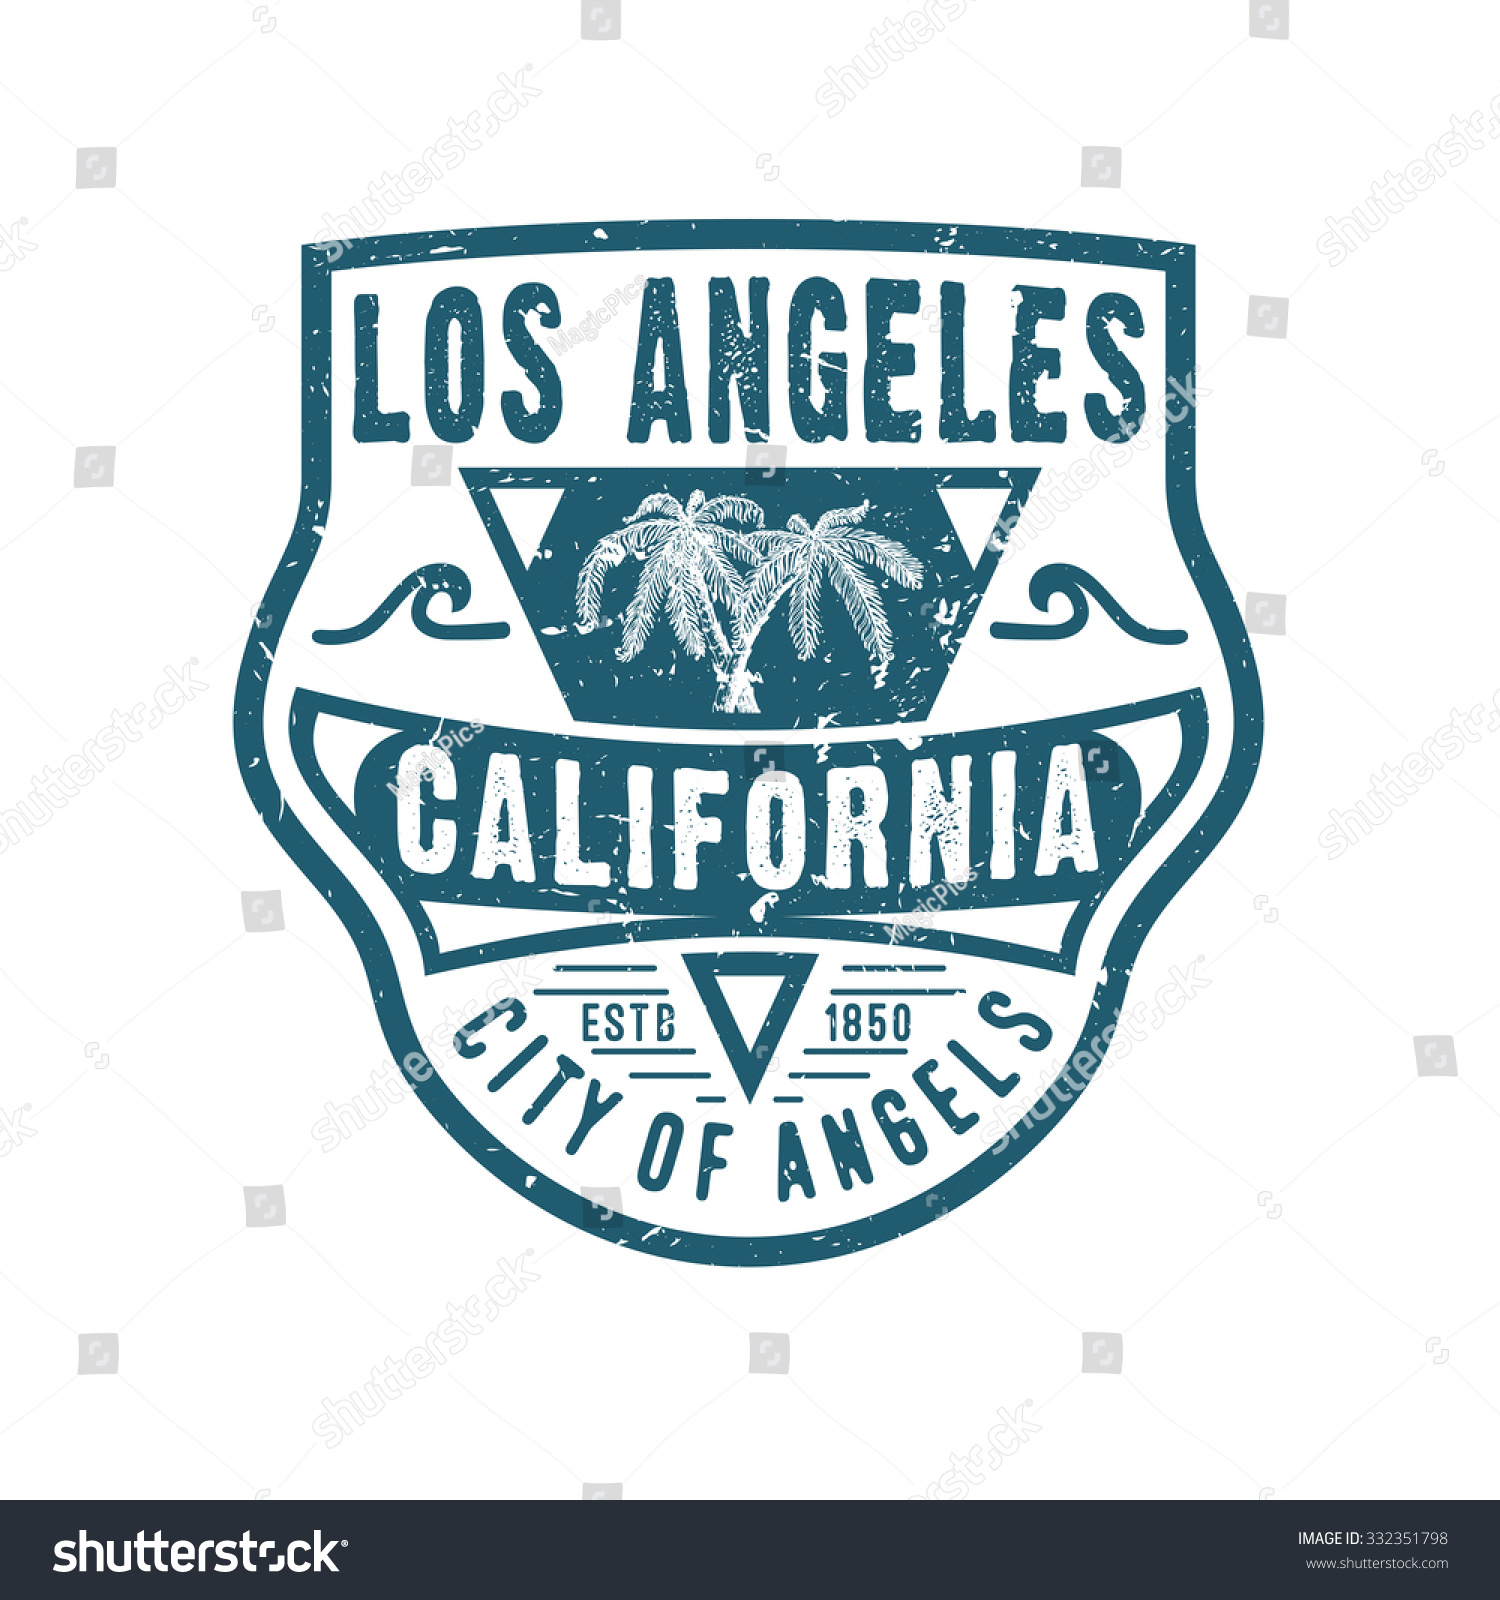 This is a picture of Trust Garment Labels Los Angeles